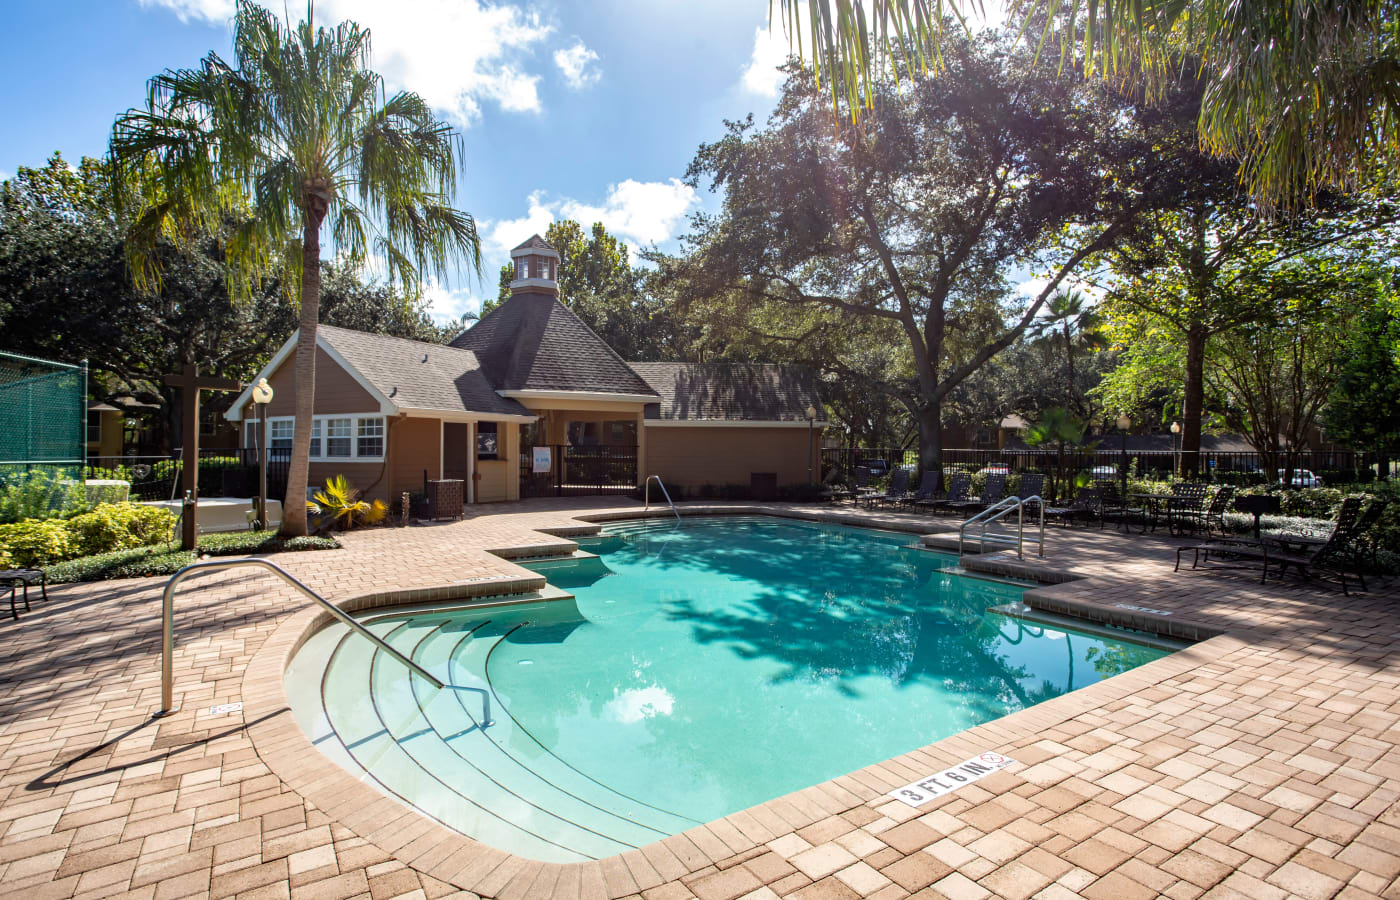 Sparkling swimming pool on a sunny day at IMT Newport Colony in Casselberry, Florida